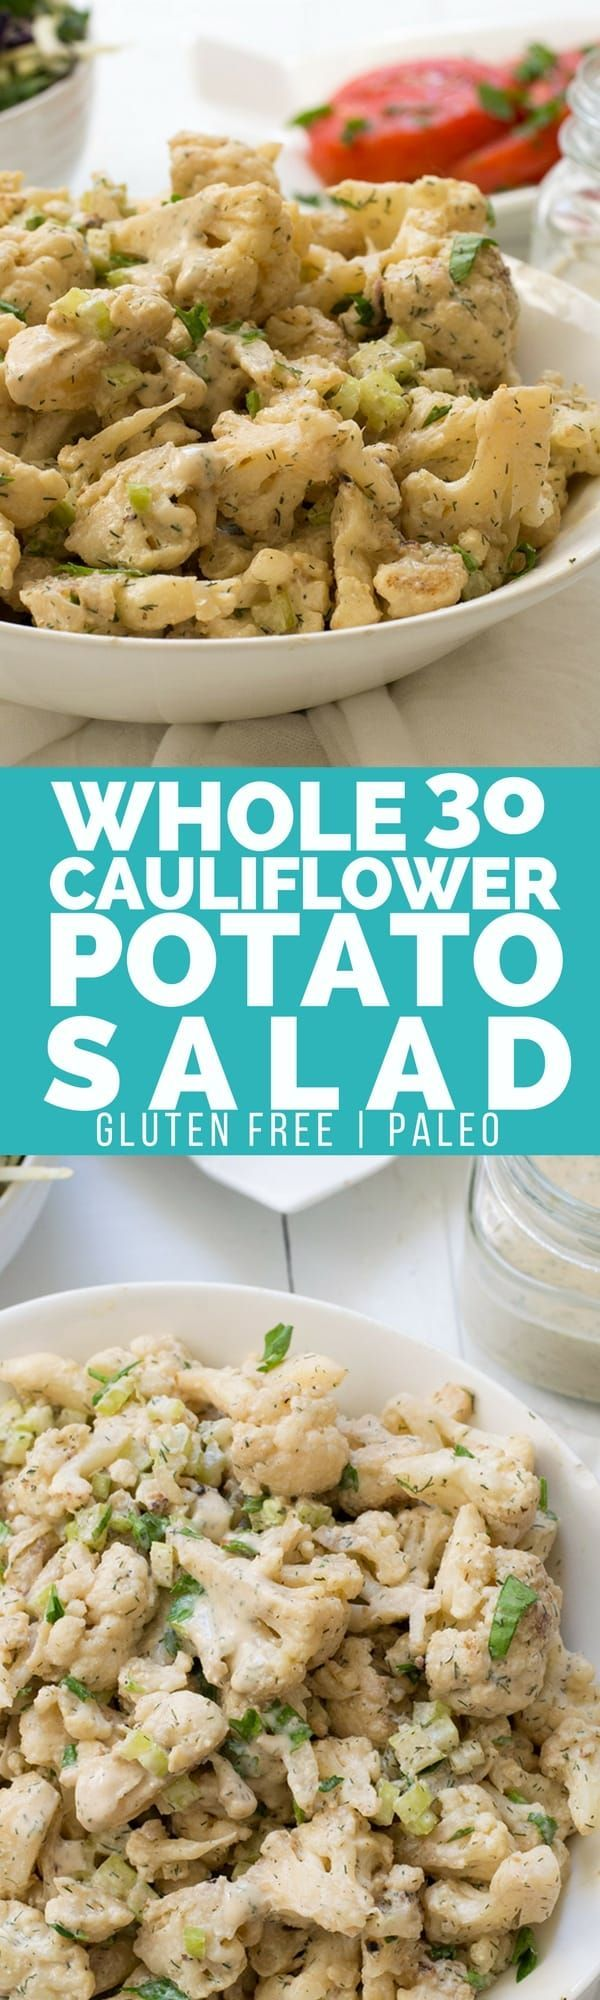 Creamy, tangy Whole30 cauliflower potato salad is the perfect side dish. #Paleo #vegan #whole30  | www.bitesofwellness.com